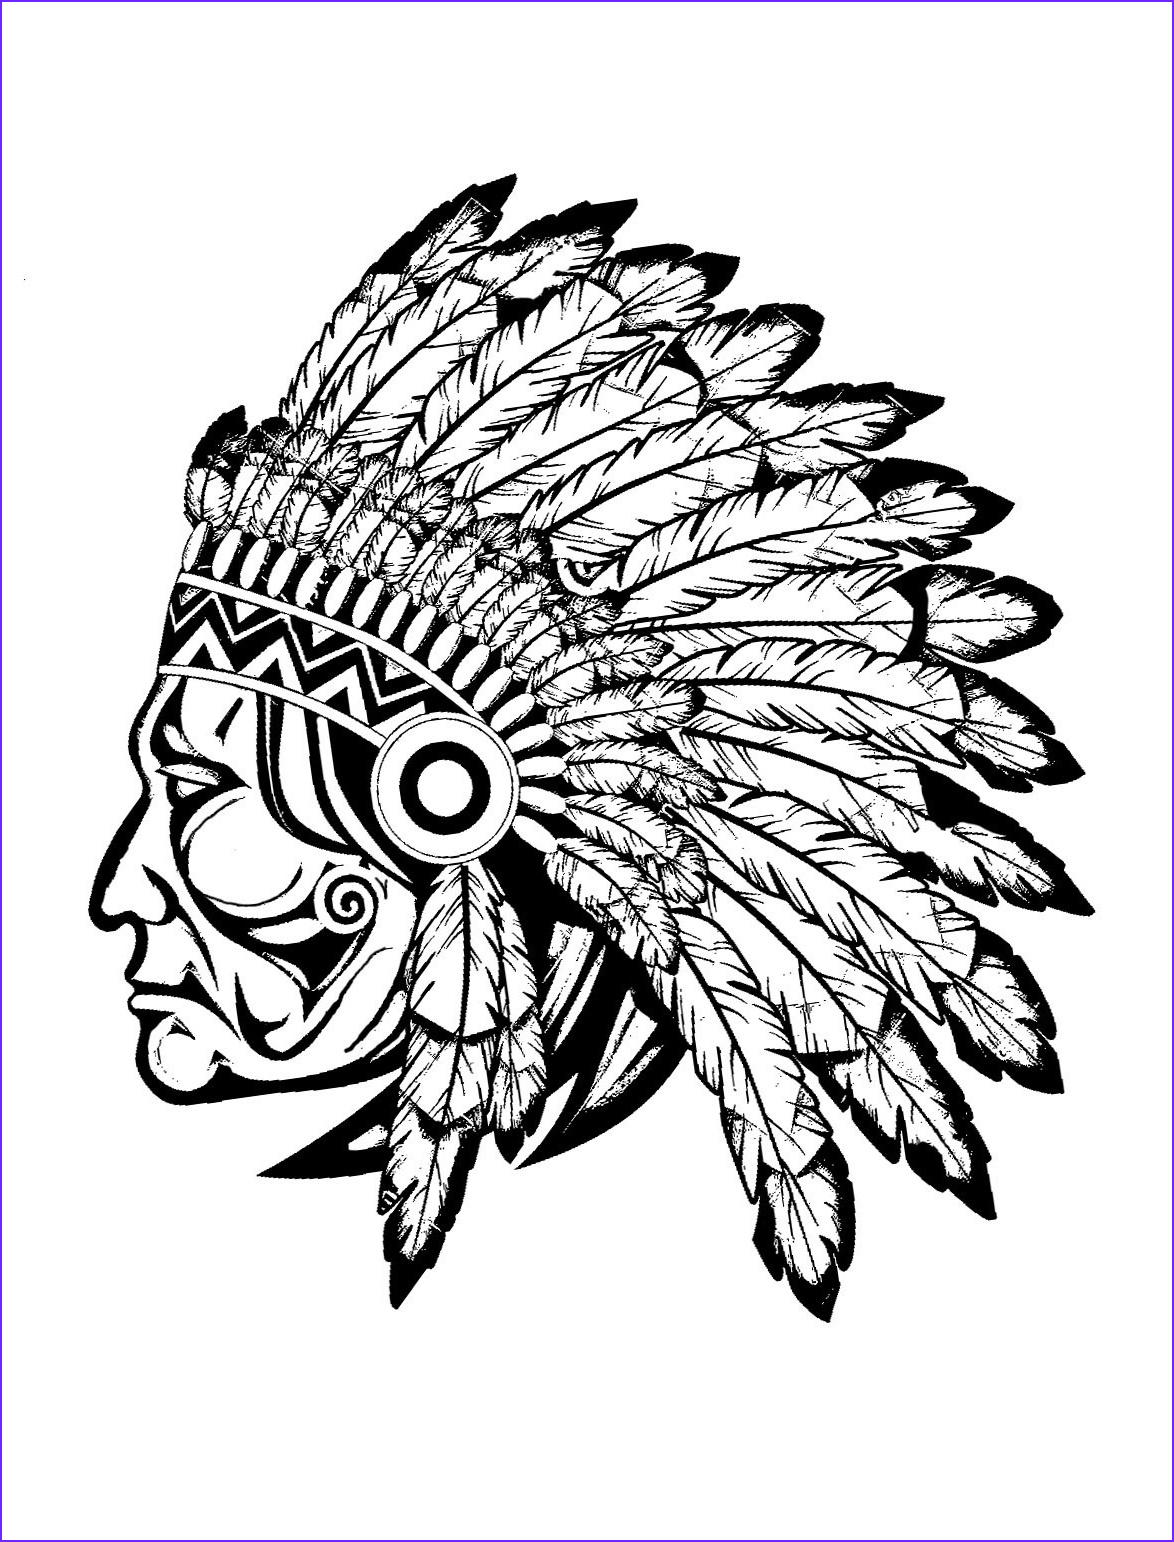 Native American Adult Coloring Books Elegant Collection Indian Native Chief Profile Native American Adult